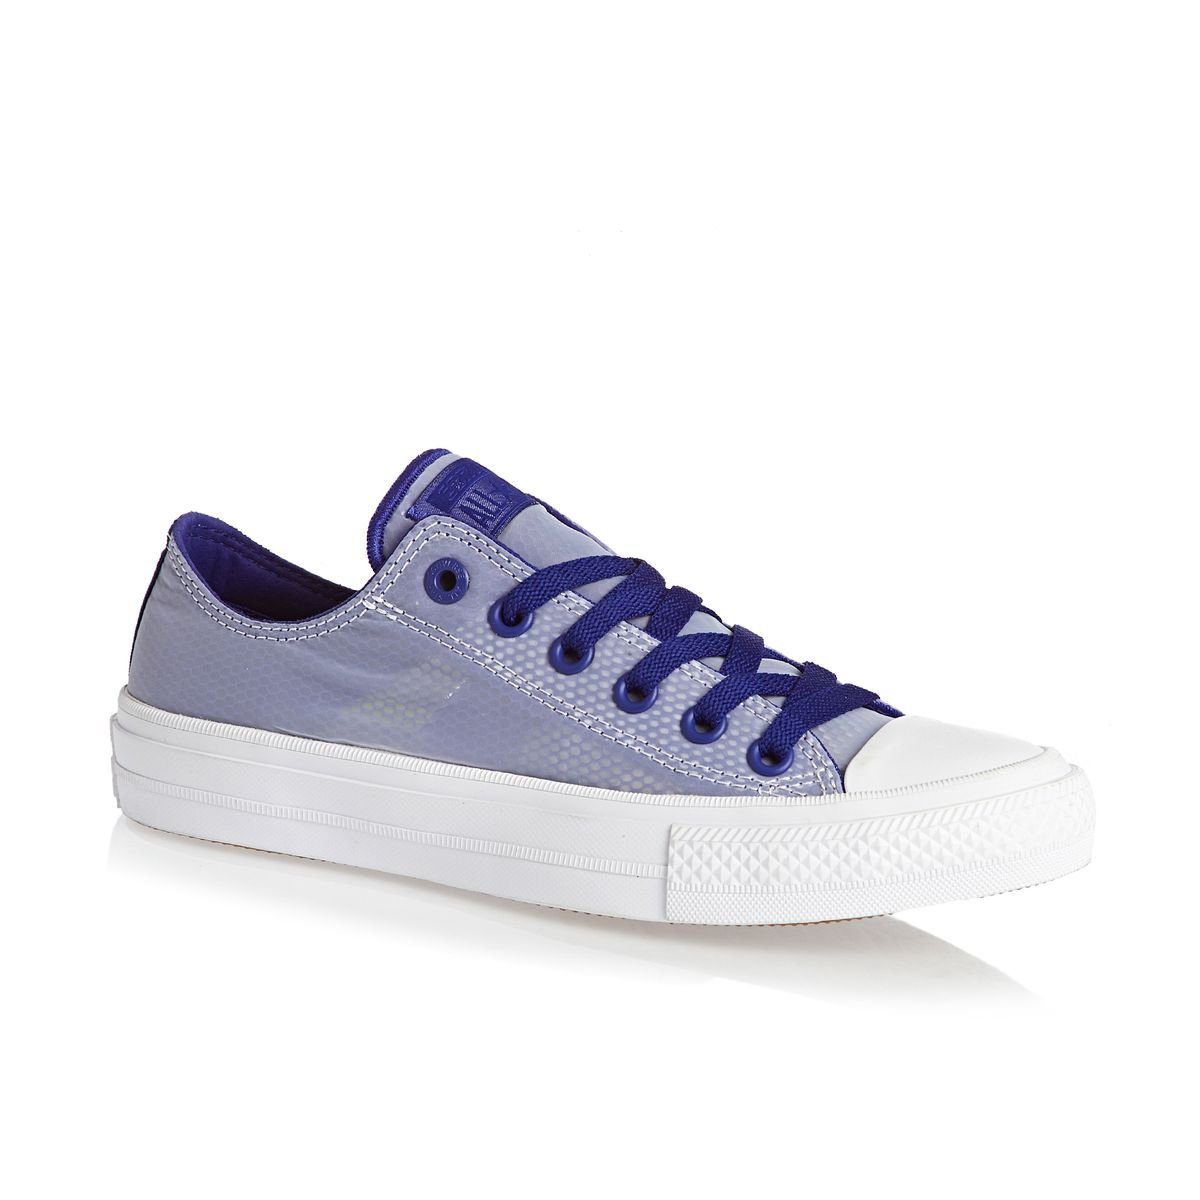 10248a7b5894e5 Converse Chuck Taylor All Star Ii Low Trainers Blue  Amazon.co.uk  Shoes    Bags